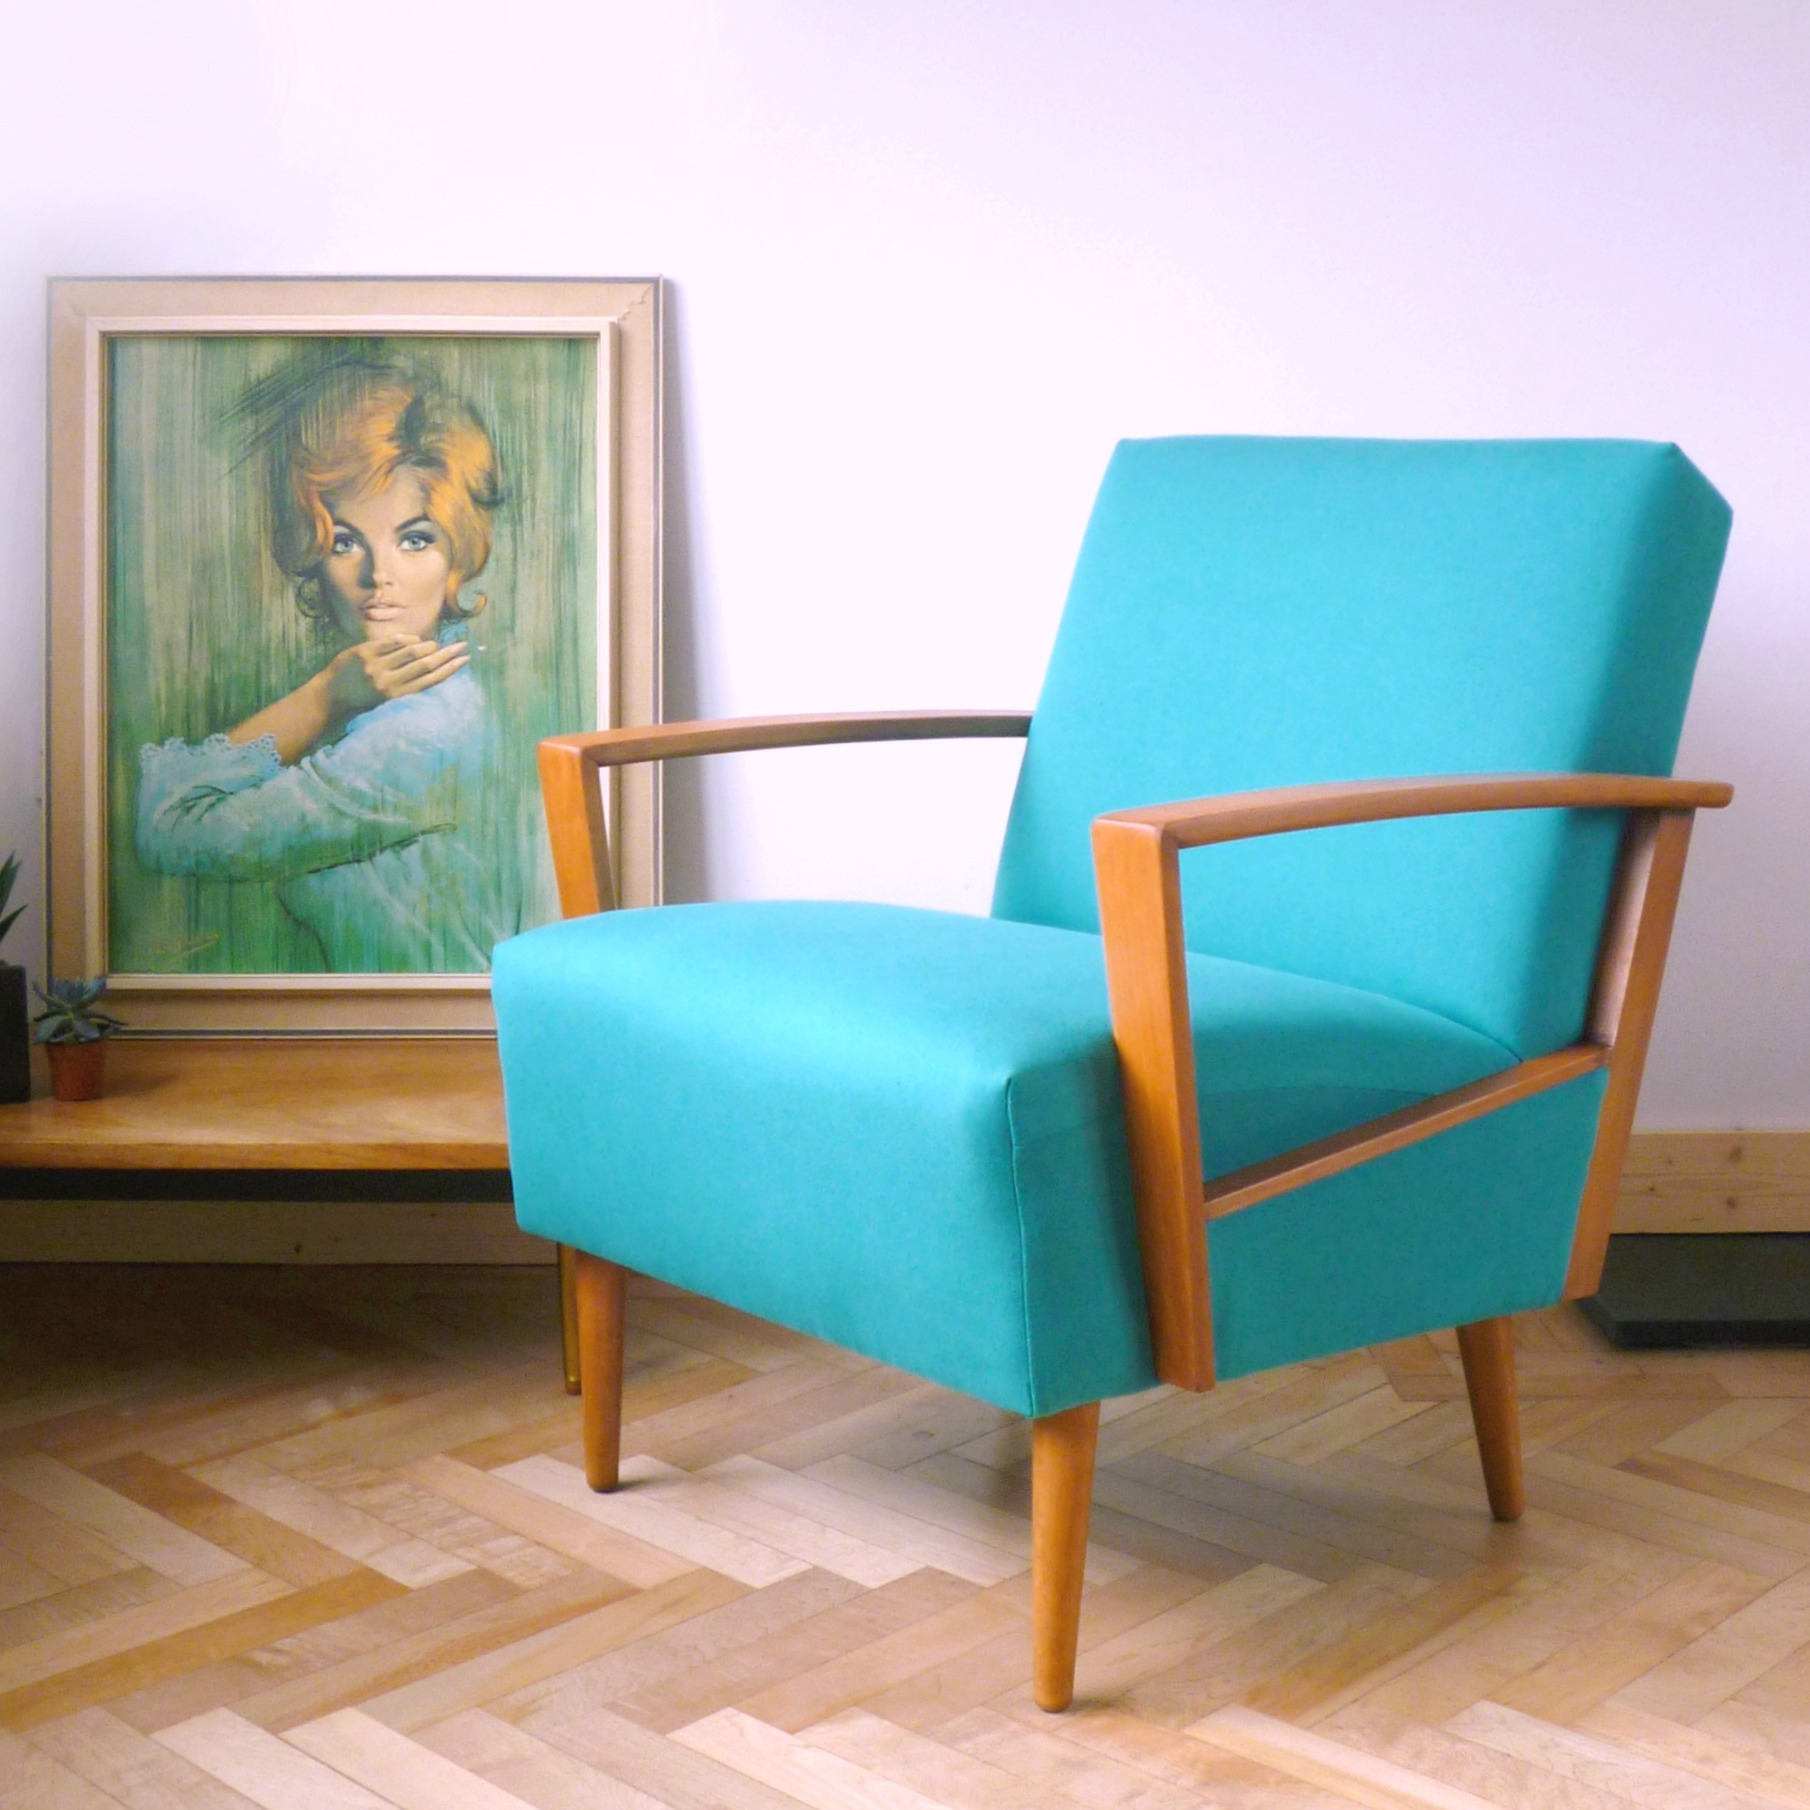 Teal Retro Danish Armchair: From Drab to Dreamy | FLORRIE+BILL